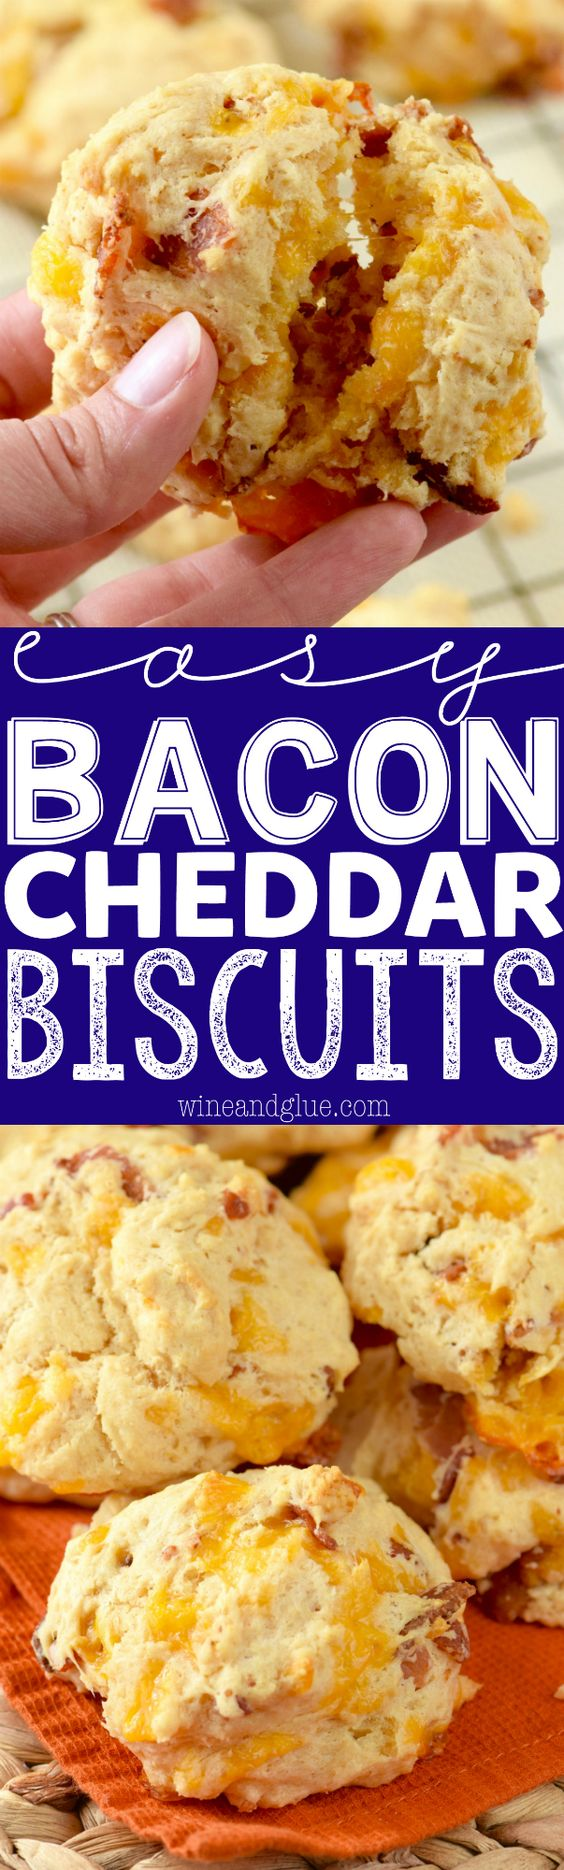 """These Easy Bacon Cheddar Biscuits are so easy that you can perfectly throw them together right before serving your meal!"" via Wine & Glue - The Best Homemade Biscuits Recipes - Quick, Easy and Delicious Bread Sides for Breakfast, Brunch, Lunch and Family Dinner! #biscuits #biscuitrecipes #homemdebiscuits #easybiscuits #rolls #homemadebreadsides #bread #breakfastrecipes #comfortfood"